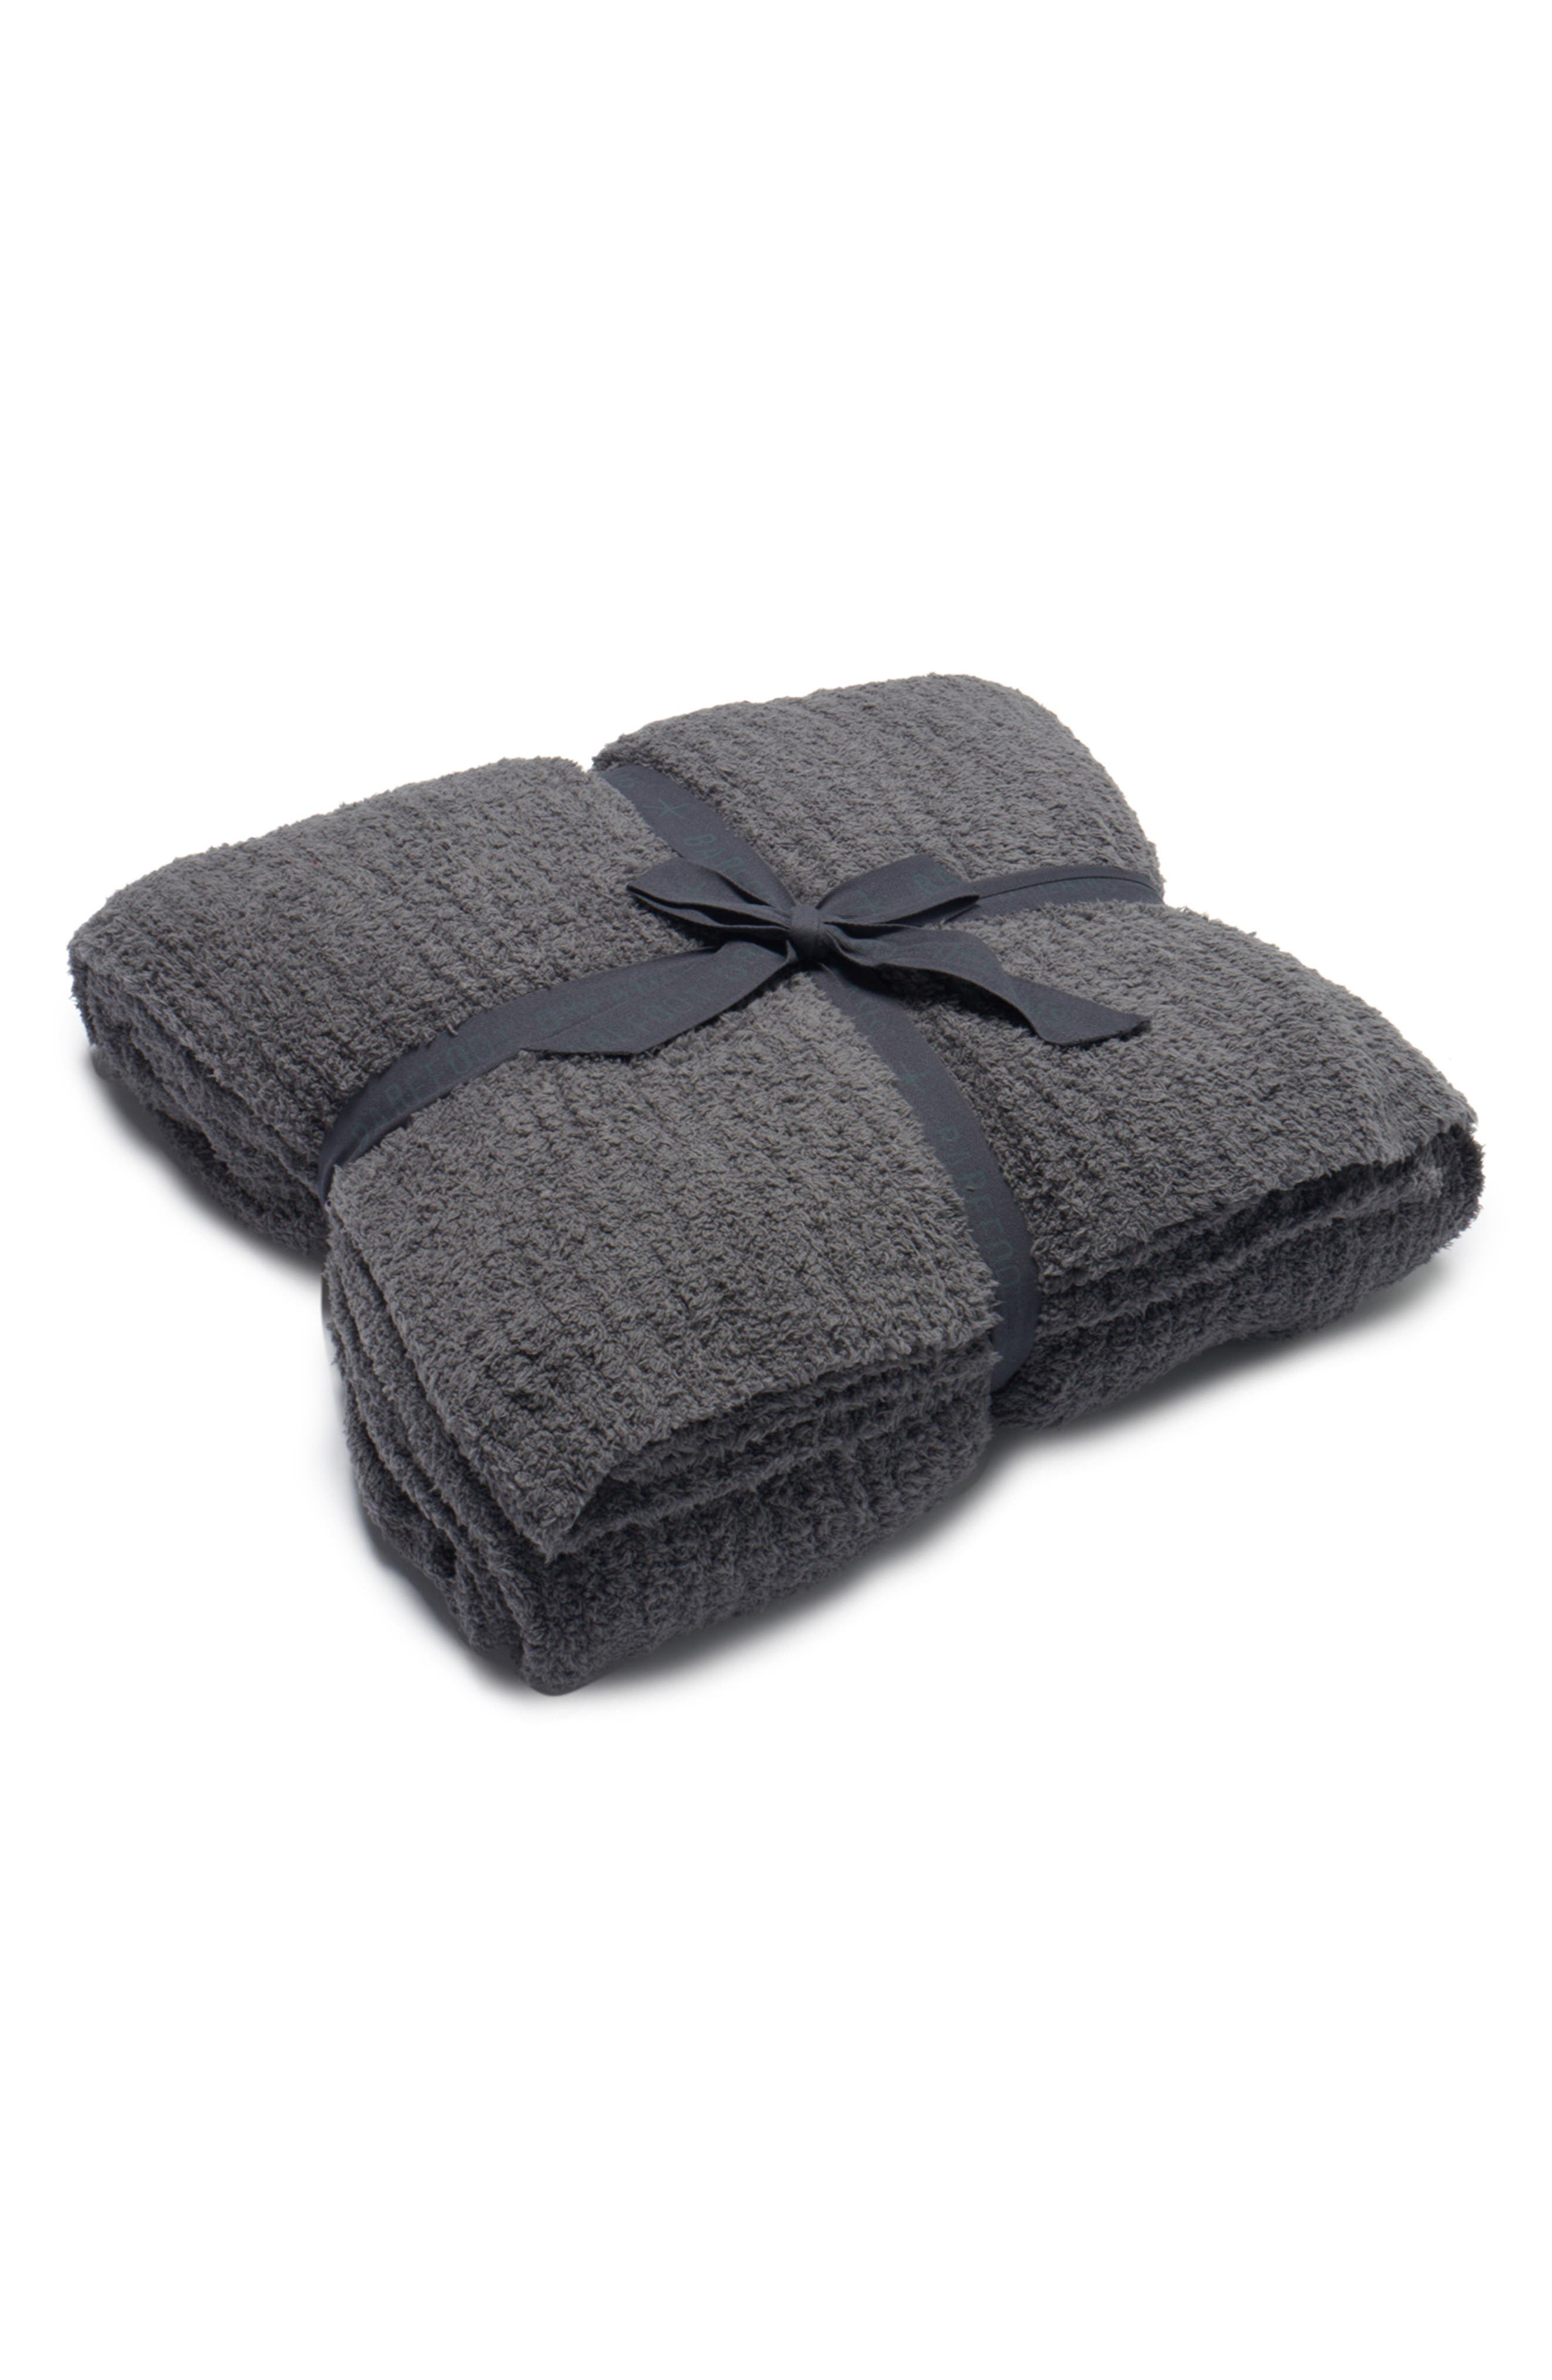 CozyChic<sup>®</sup> Ribbed Throw Blanket,                             Alternate thumbnail 2, color,                             GRAPHITE